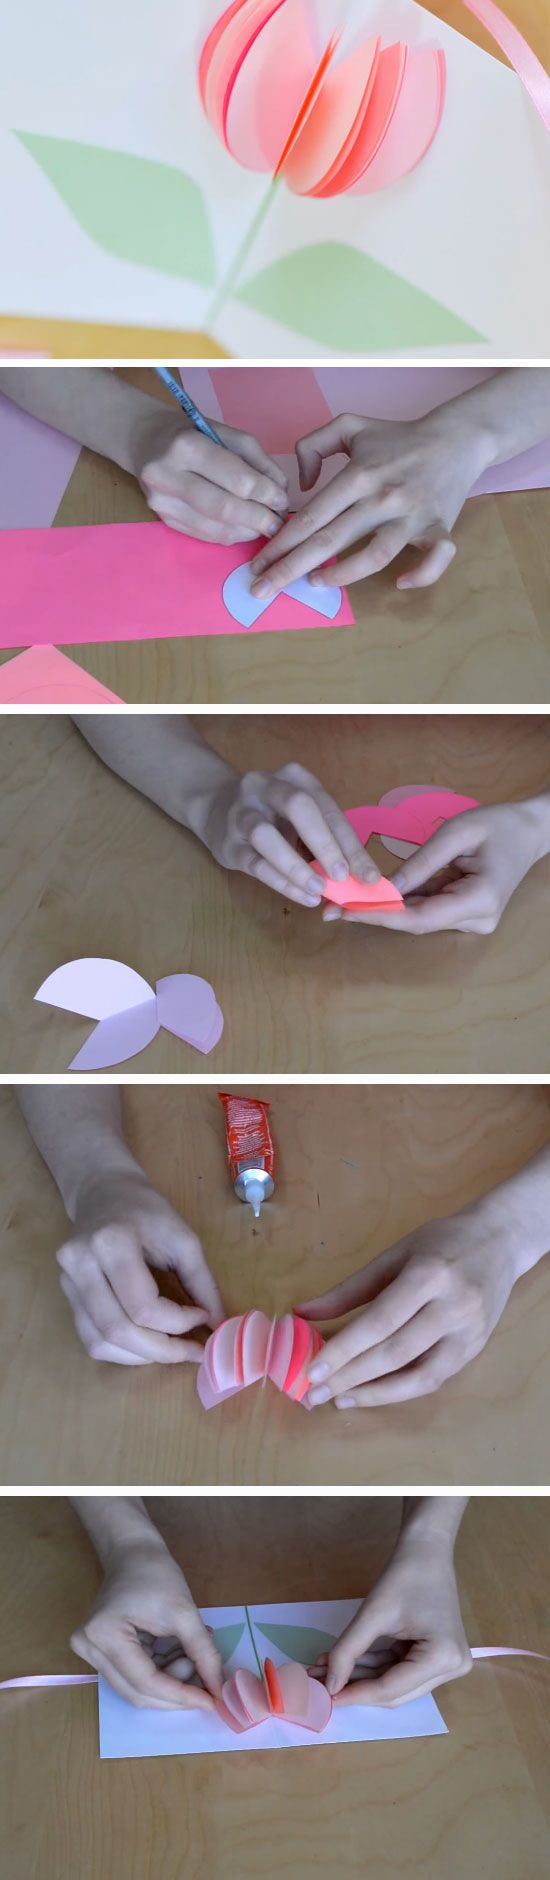 3D Tulip | DIY Mothers Day Card Ideas for Children | Easy Birthday Cards to Make for Mom